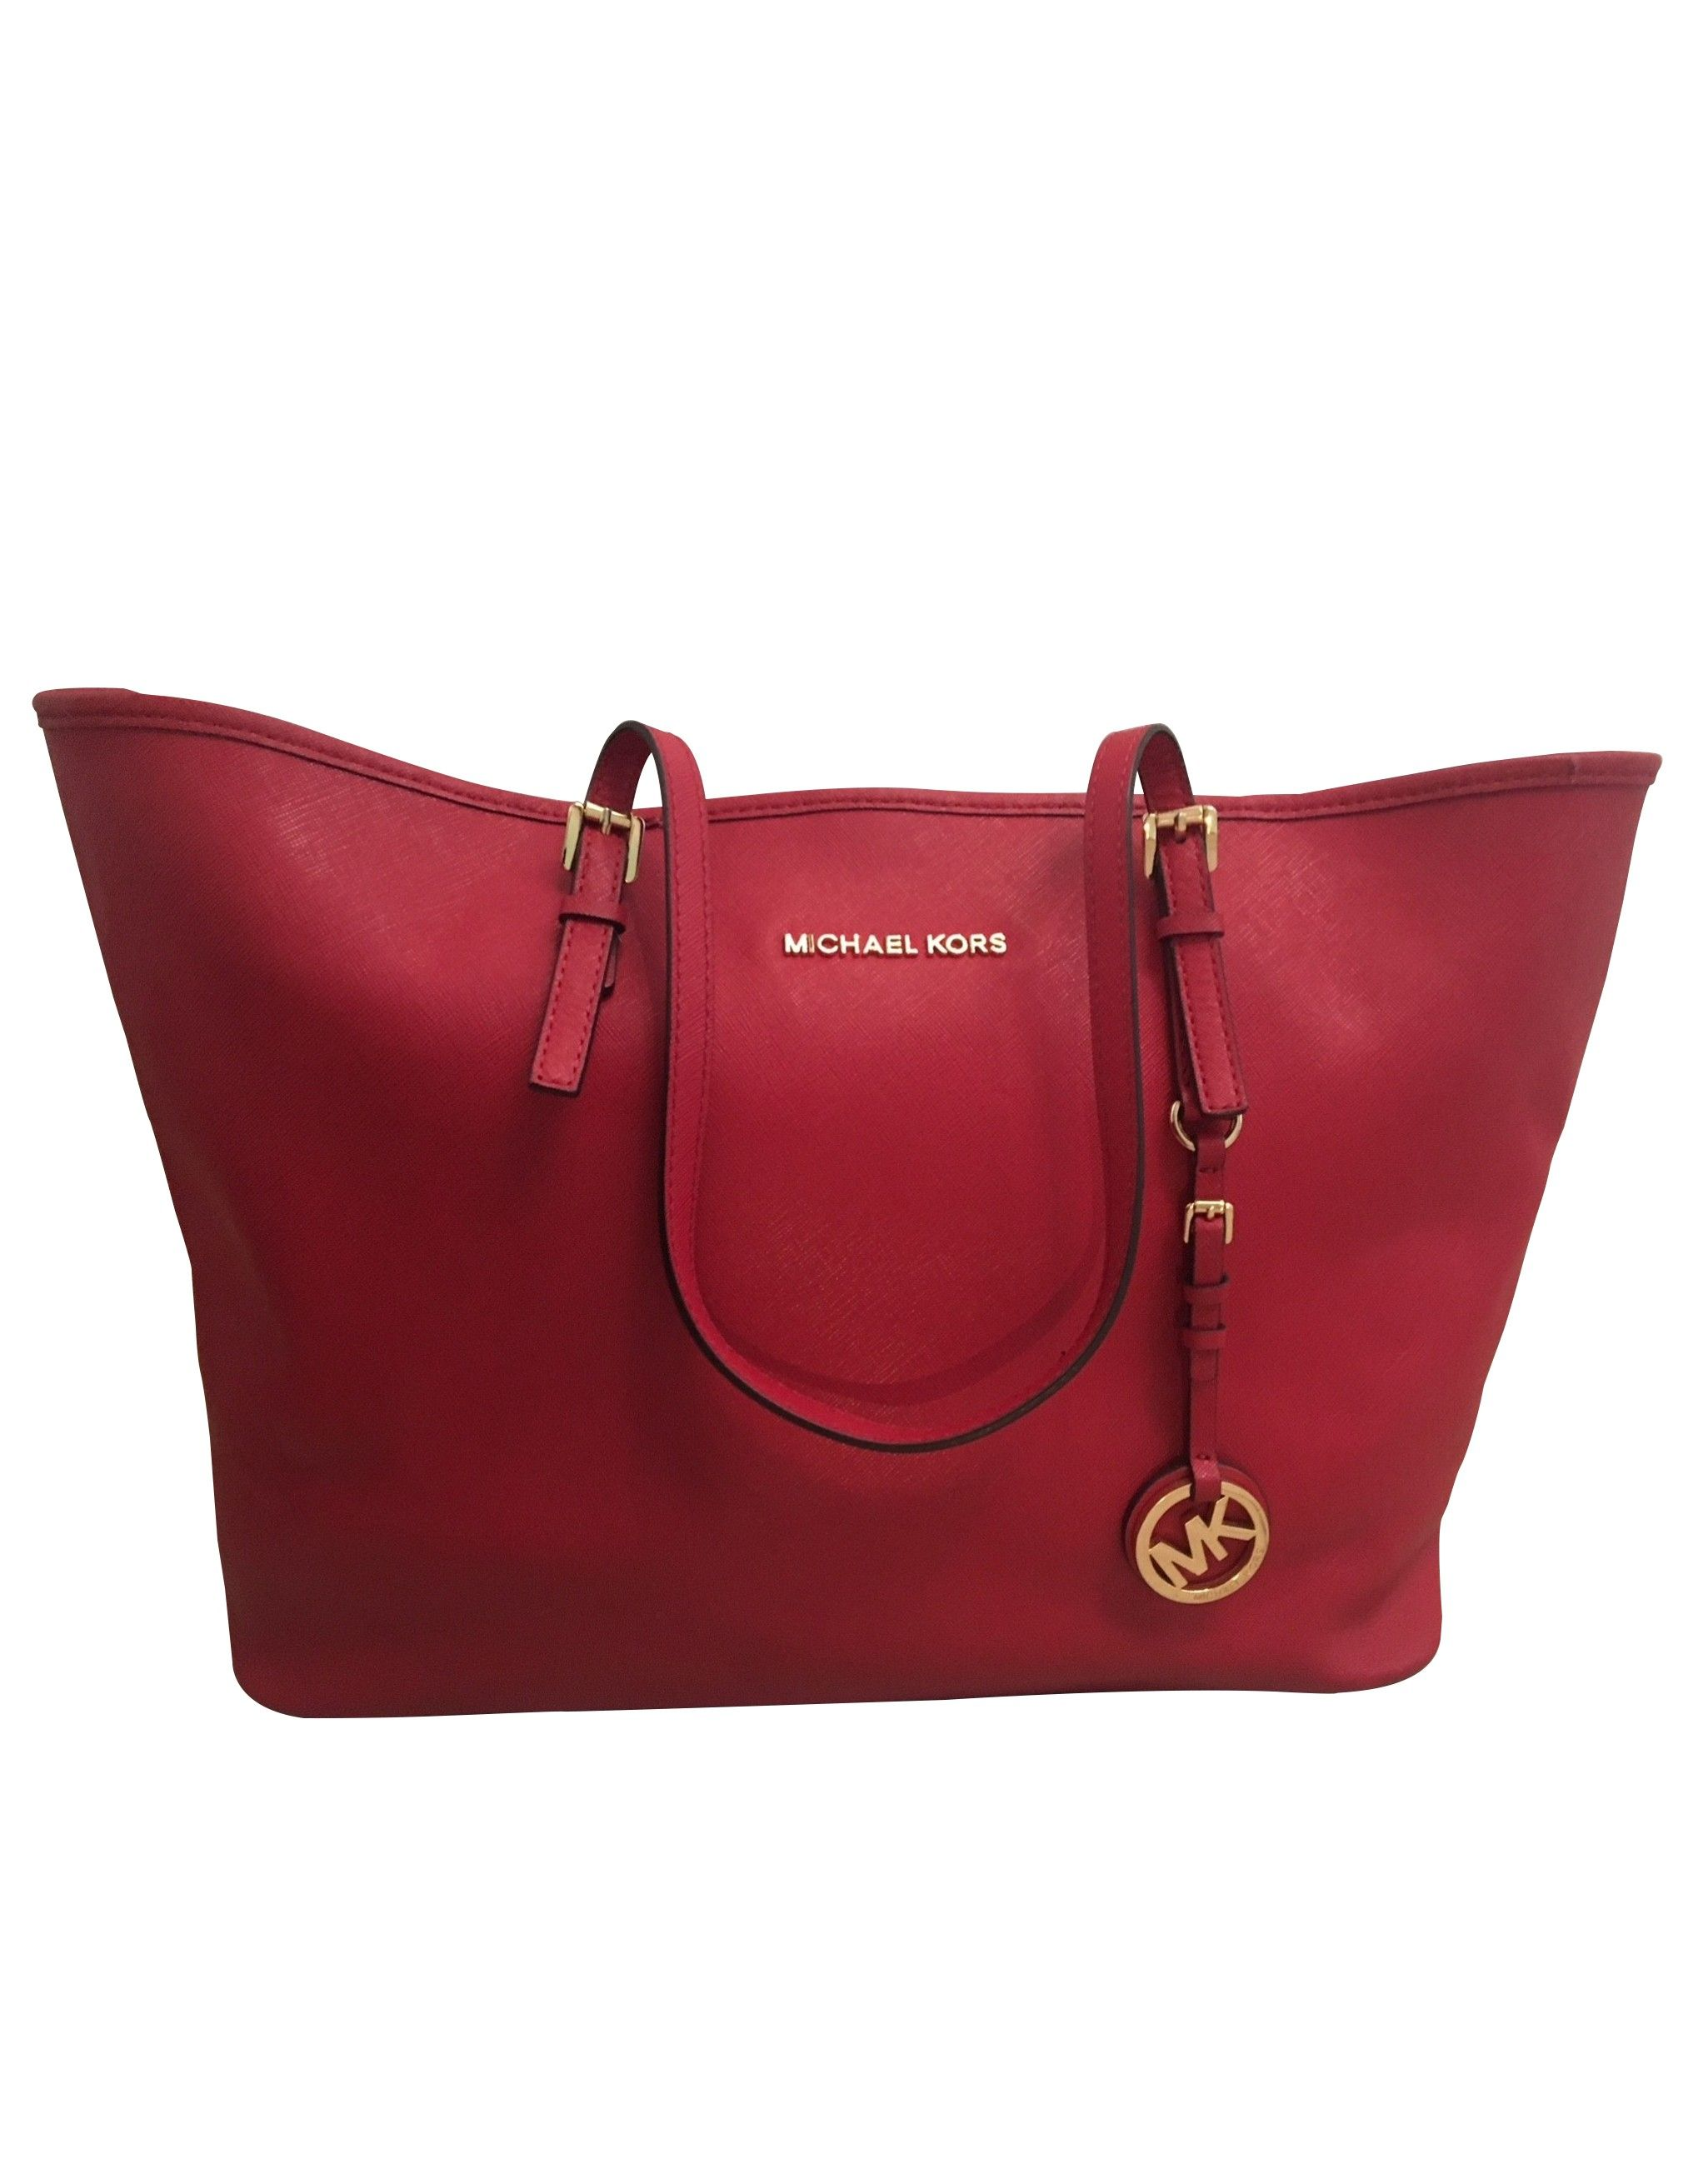 MICHAEL KORS Tasche rot. Secondhand. OUTLET | Tasche rot